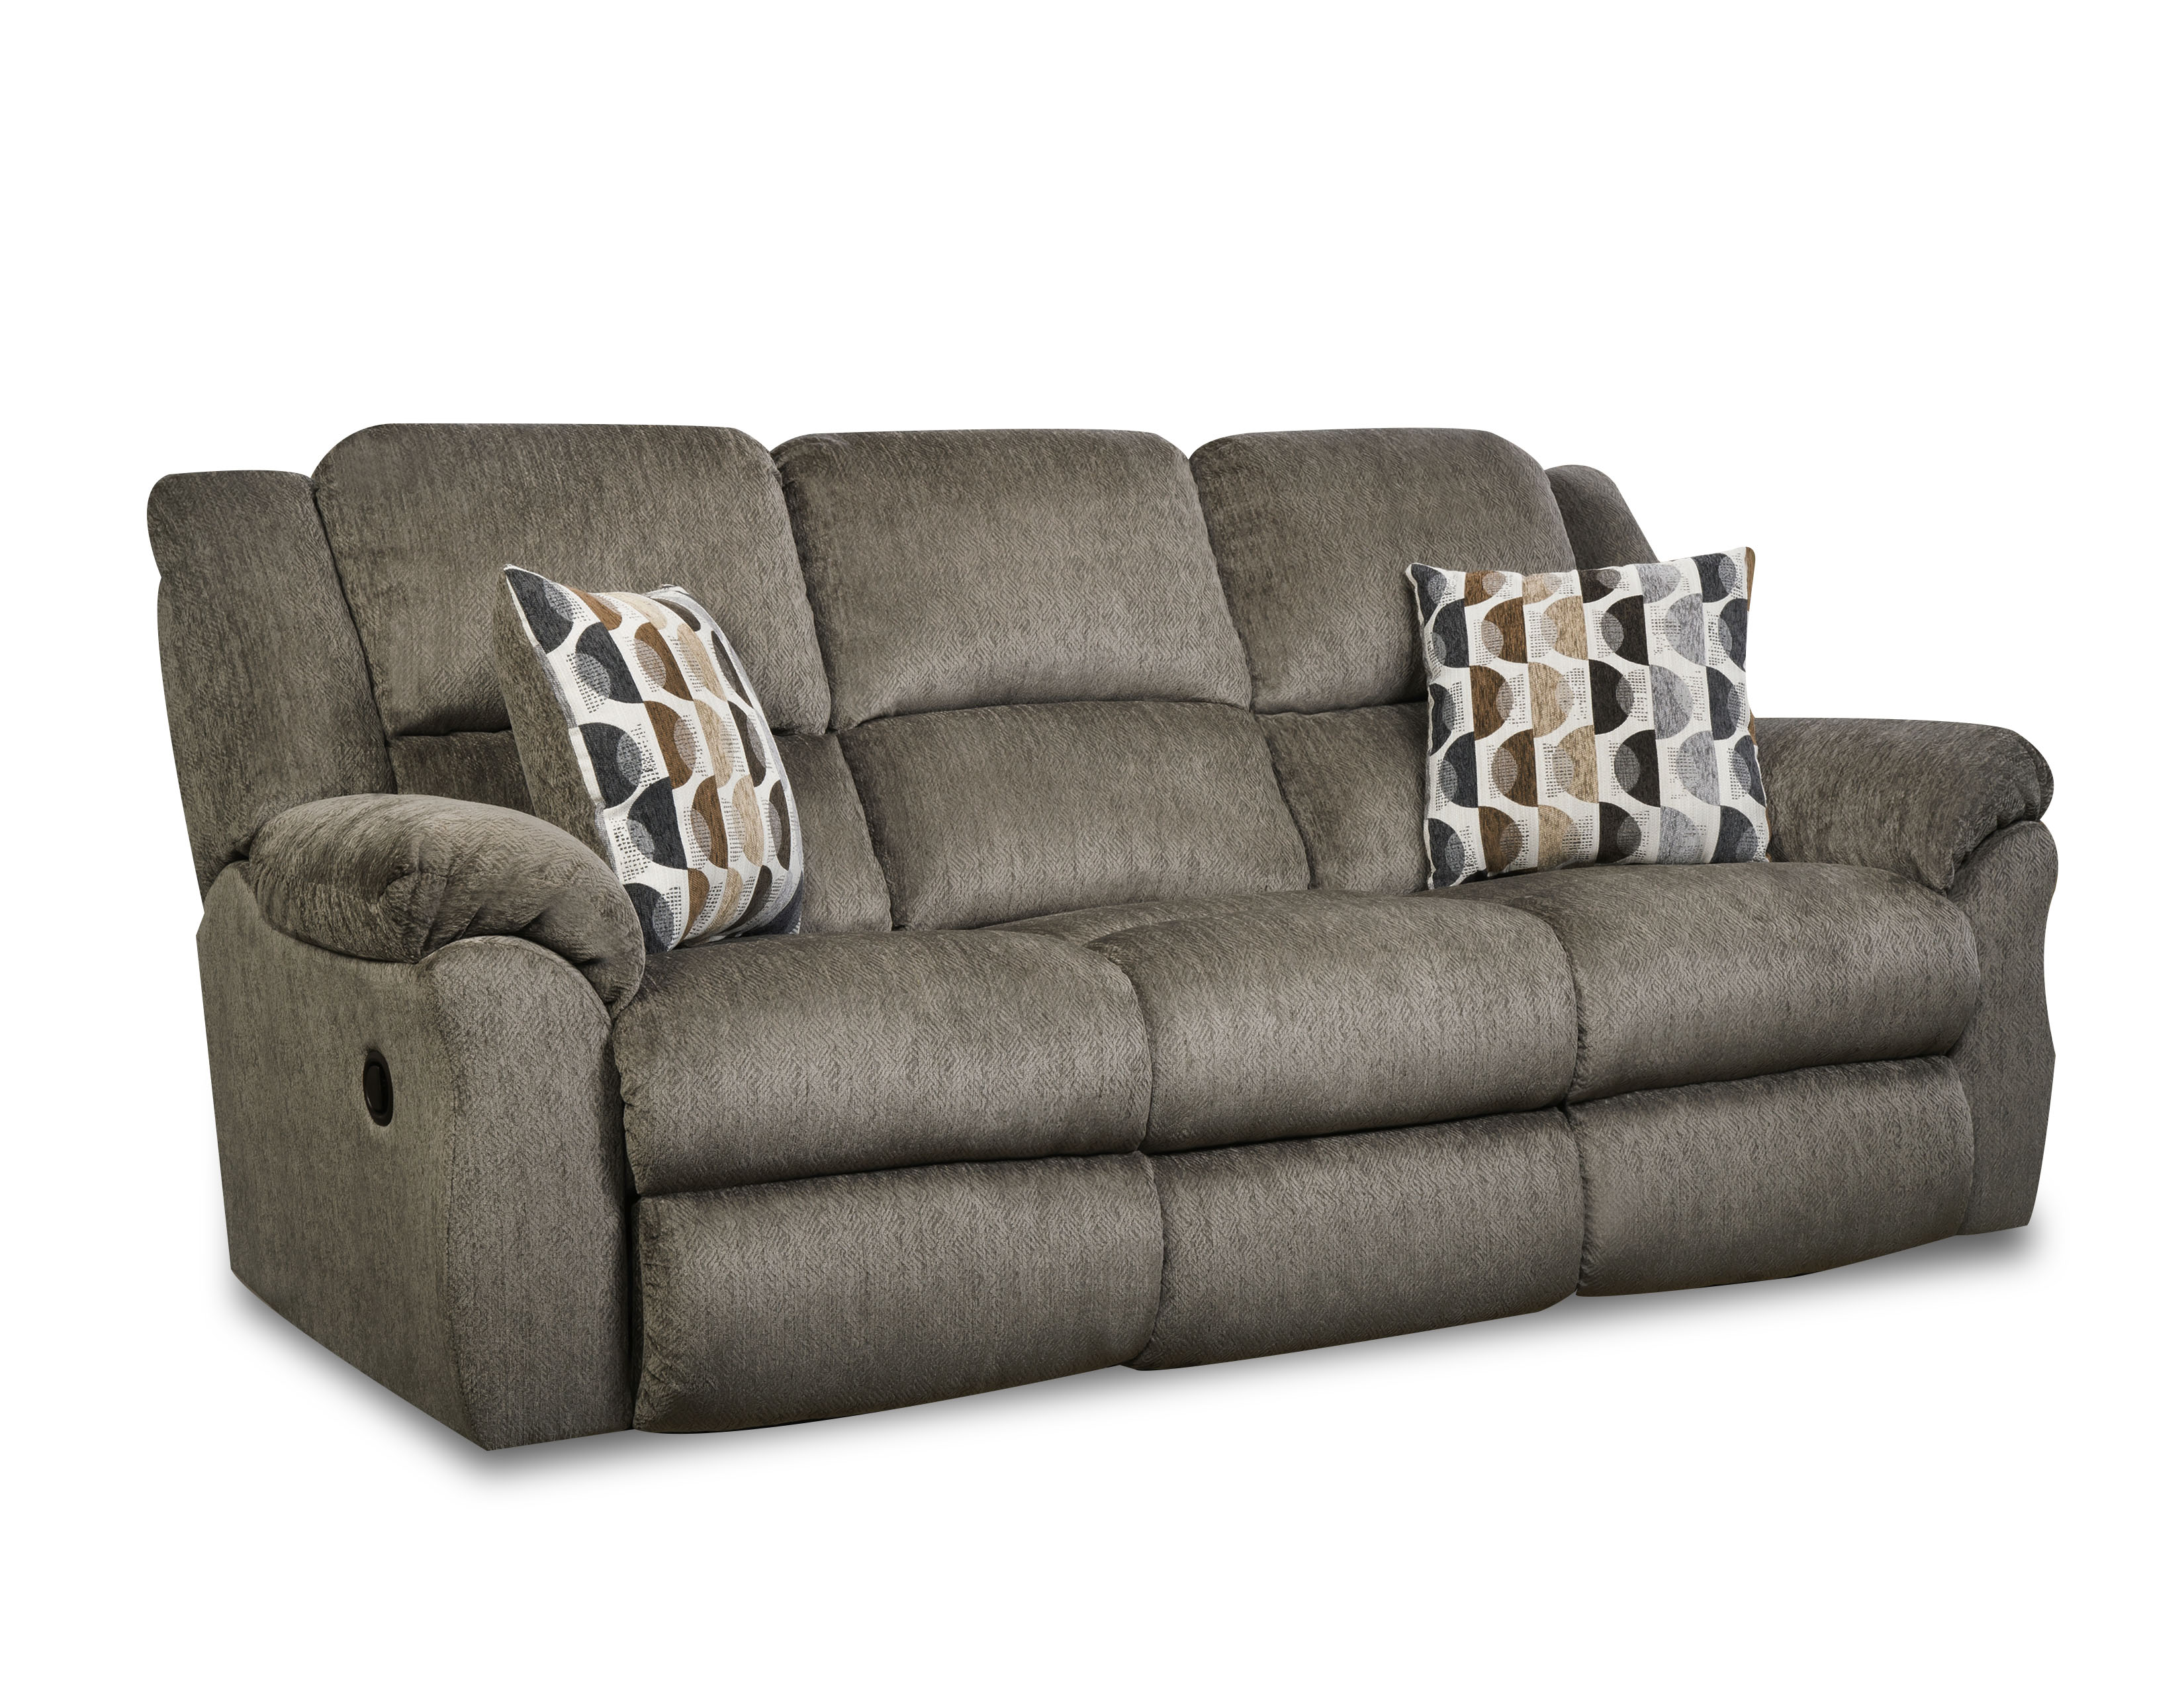 Hendricks Outlet - Homestretch Recliner 169 Group